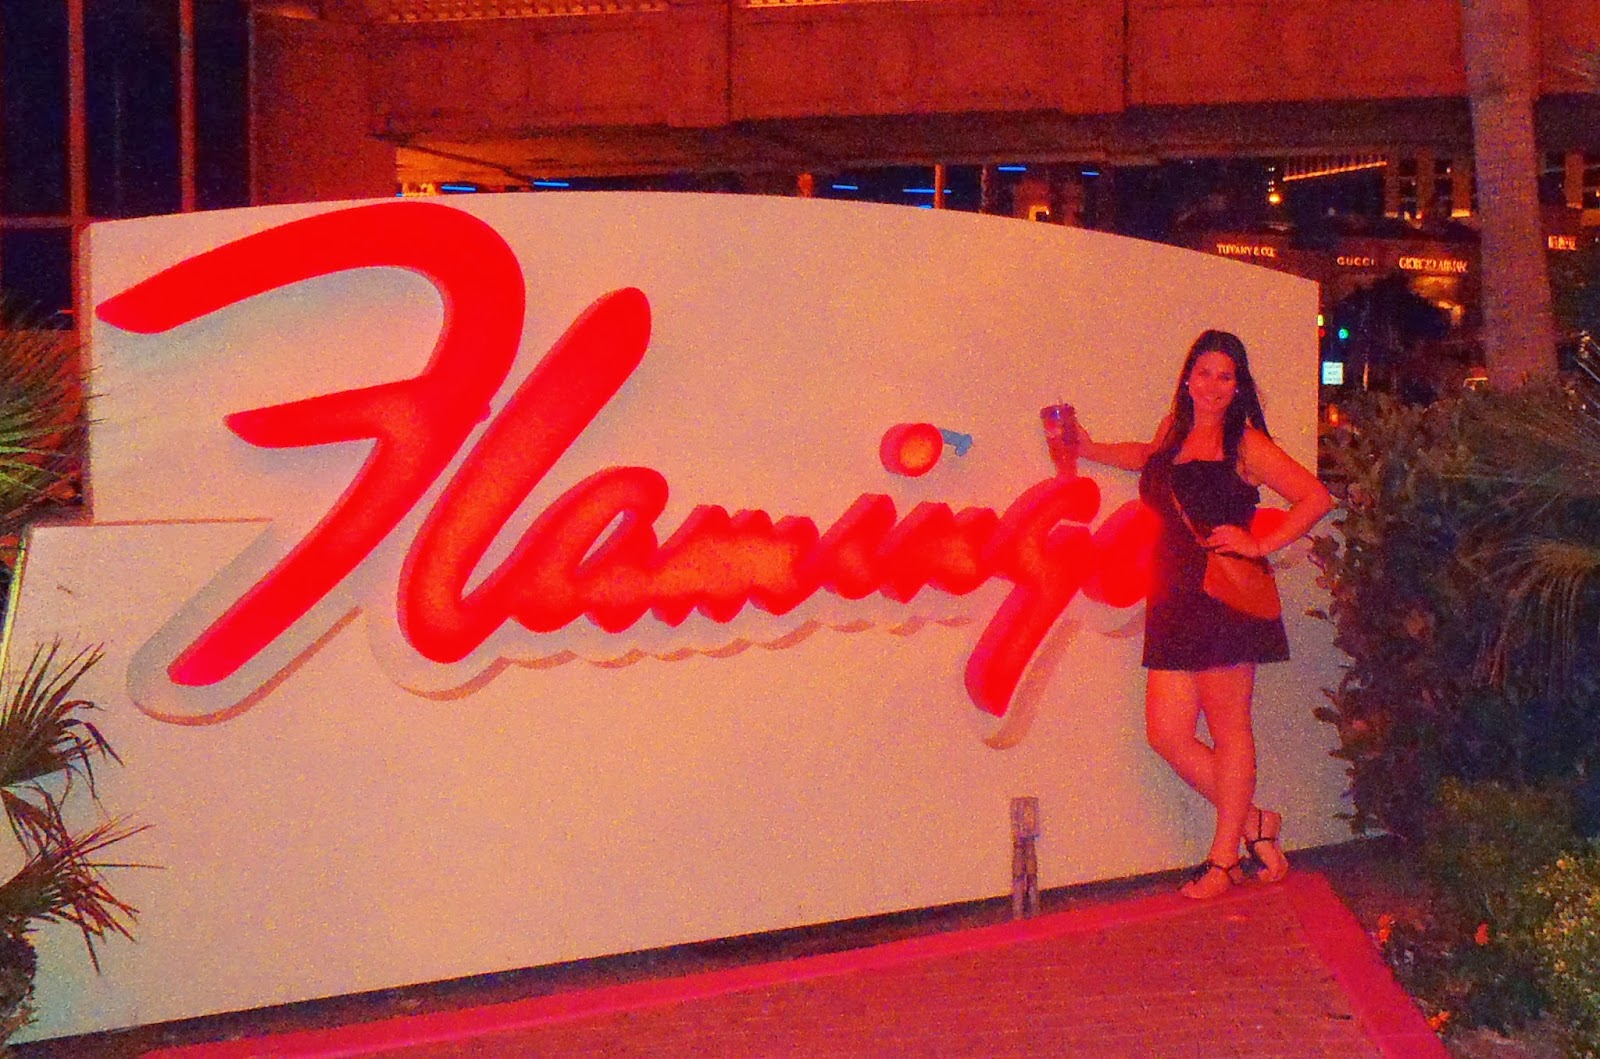 me in front of the flamingo sign